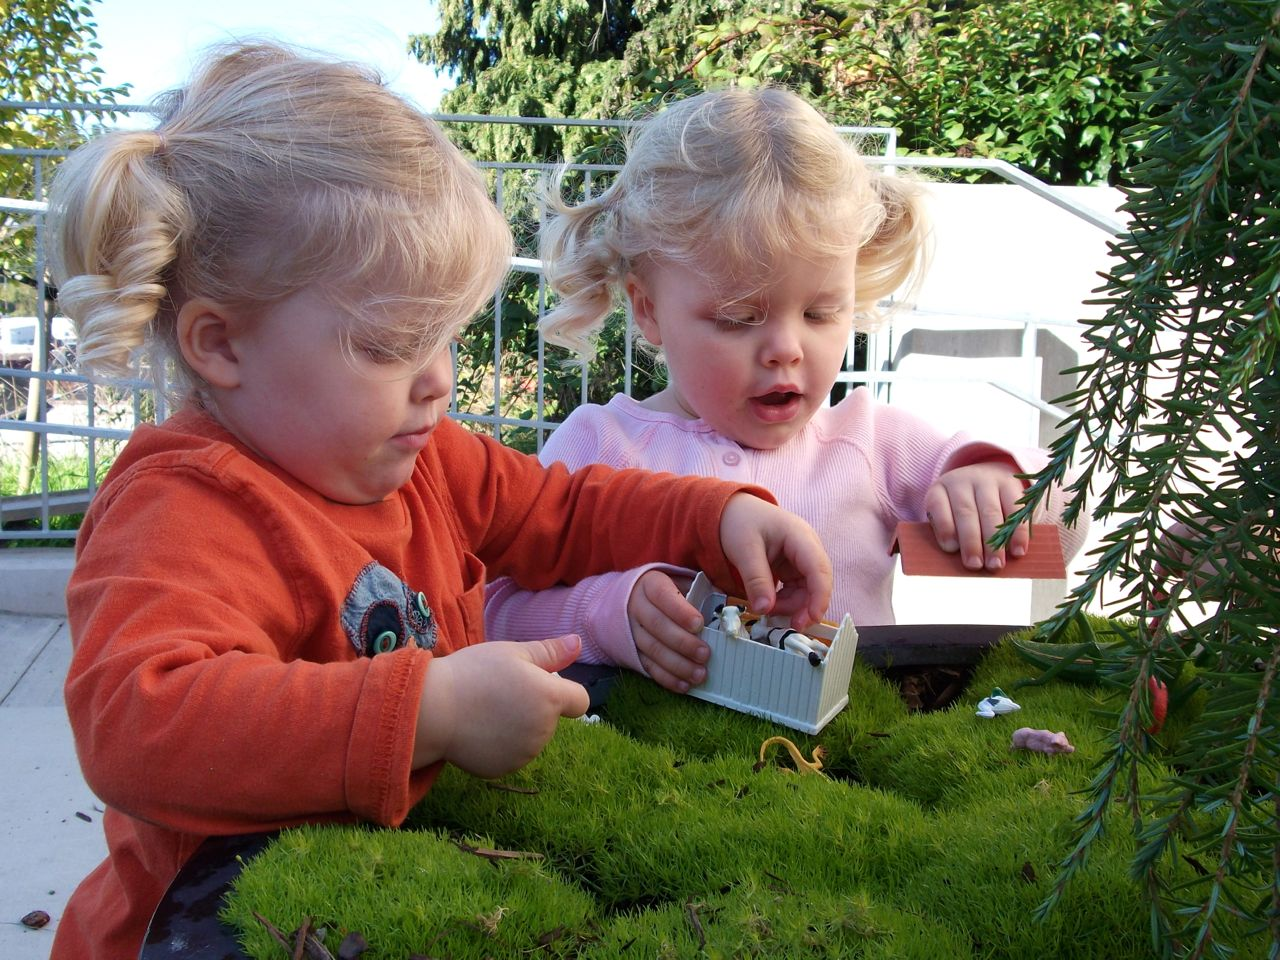 Strewing at the Seattle Children's Playgarden: farm animals discovered in a pot of touchable moss